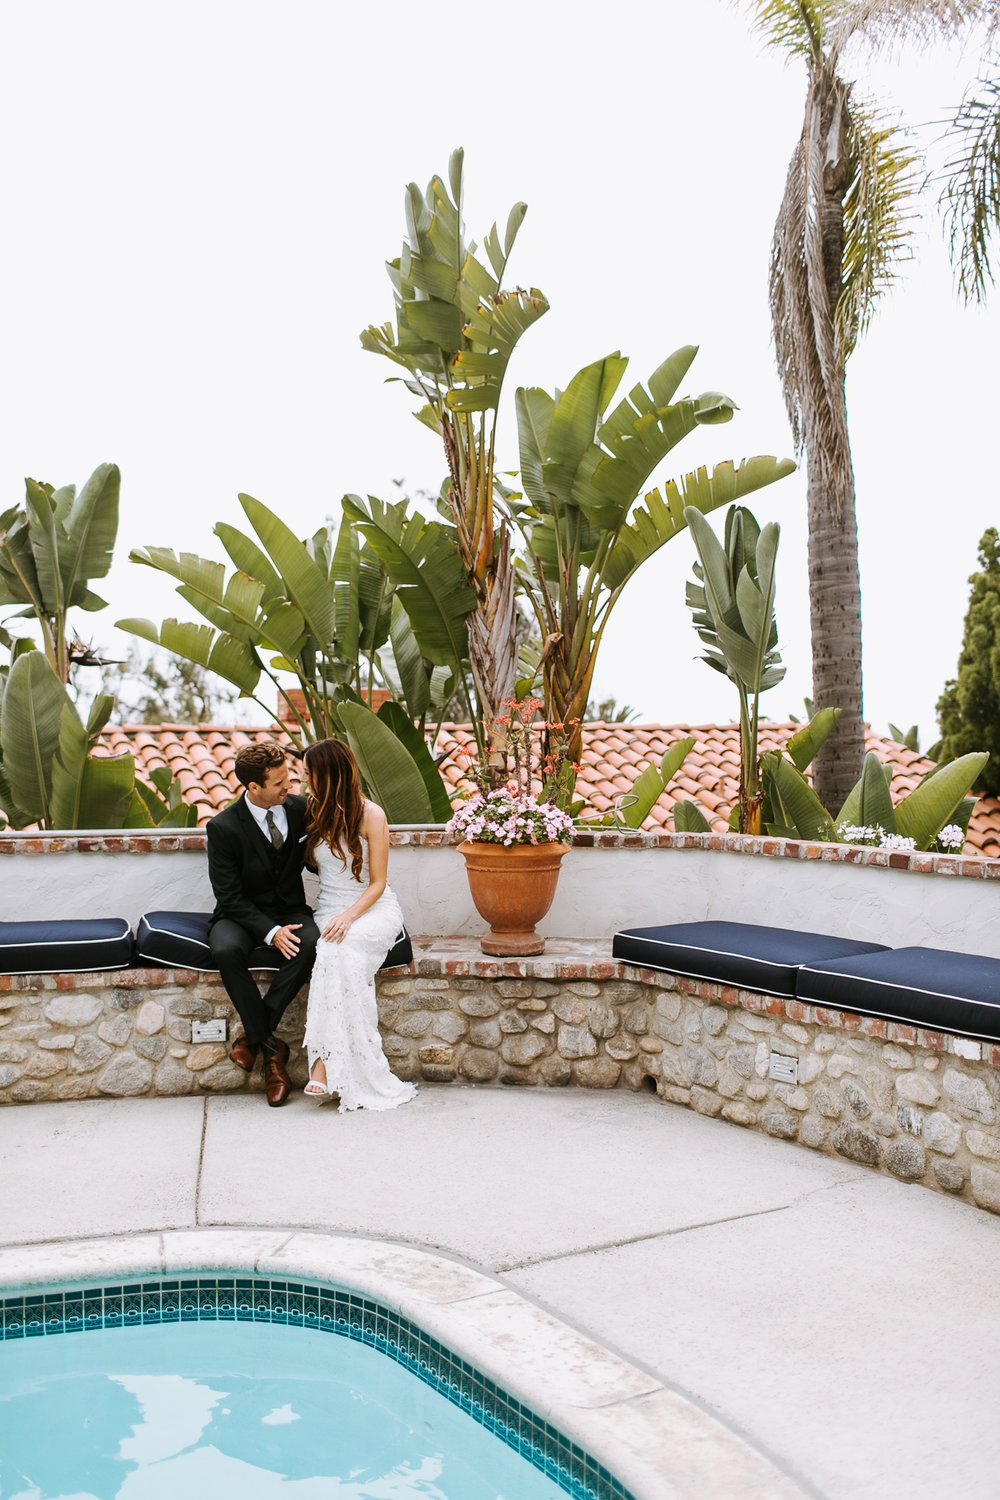 LagunaBeach-WeddingPhotographer-23.jpg